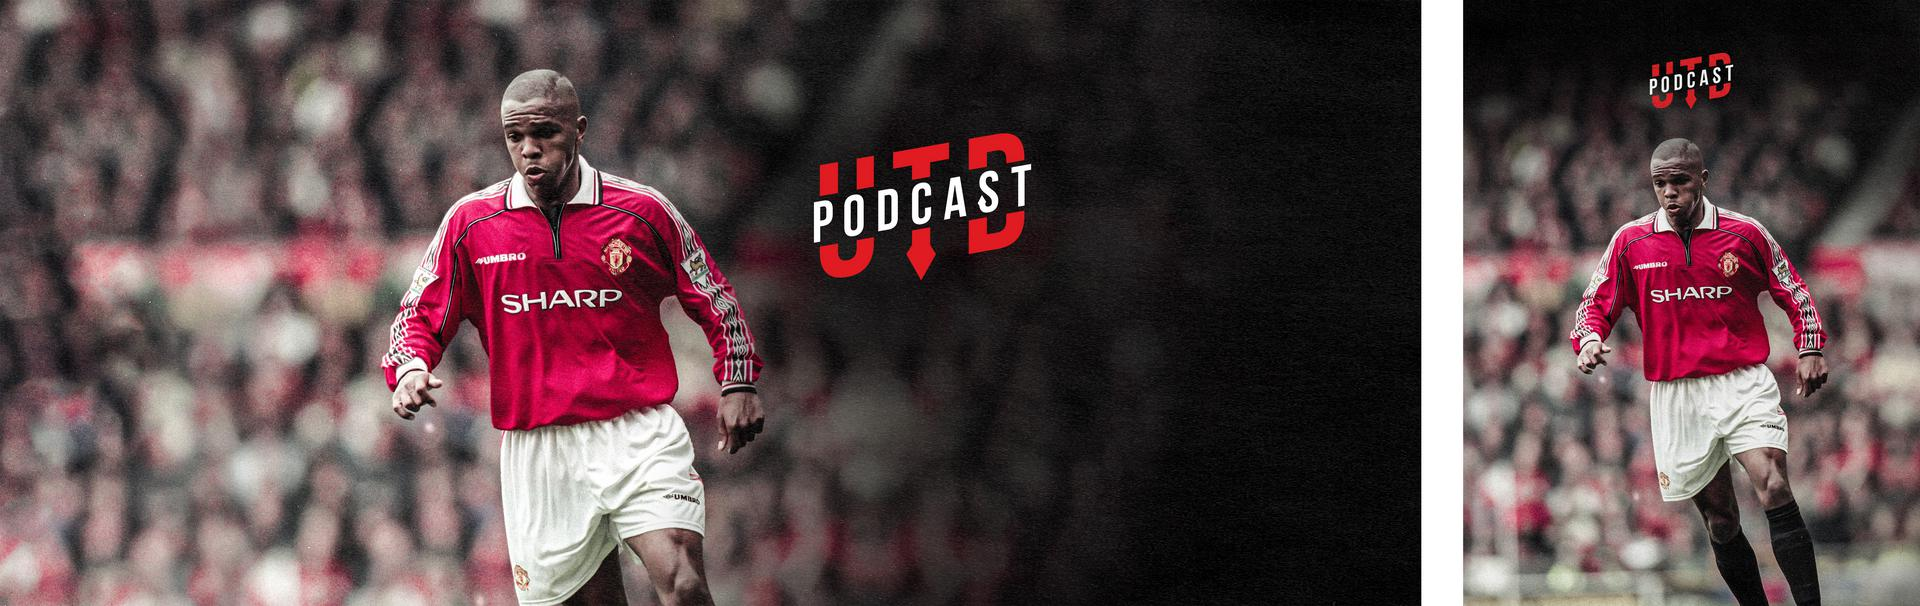 Promotional graphic for the new episode of UTD Podcast featuring Quinton Fortune.